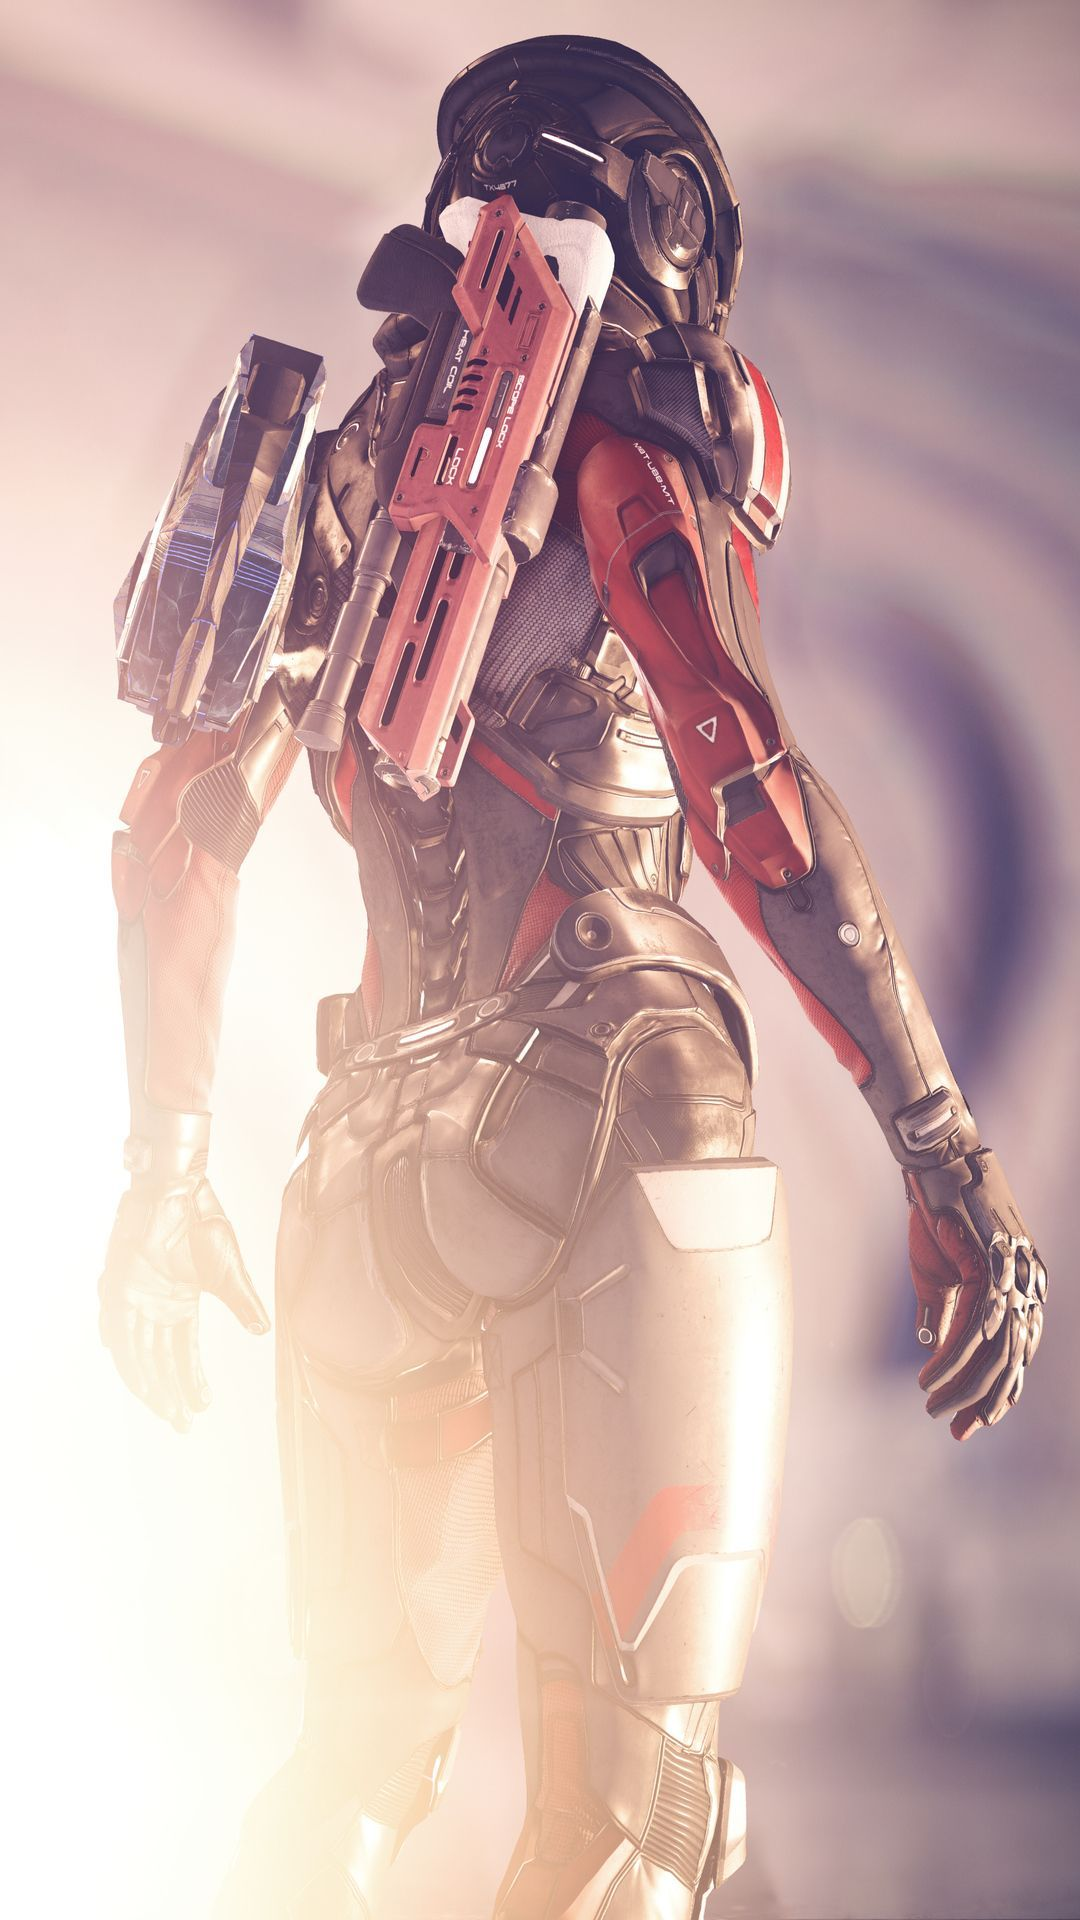 Mass Effect Andromeda 2019 4k Mobile Wallpaper Iphone Android Samsung Pixel Xiaomi Mobile Wallpaper Mass Effect Iphone Wallpaper